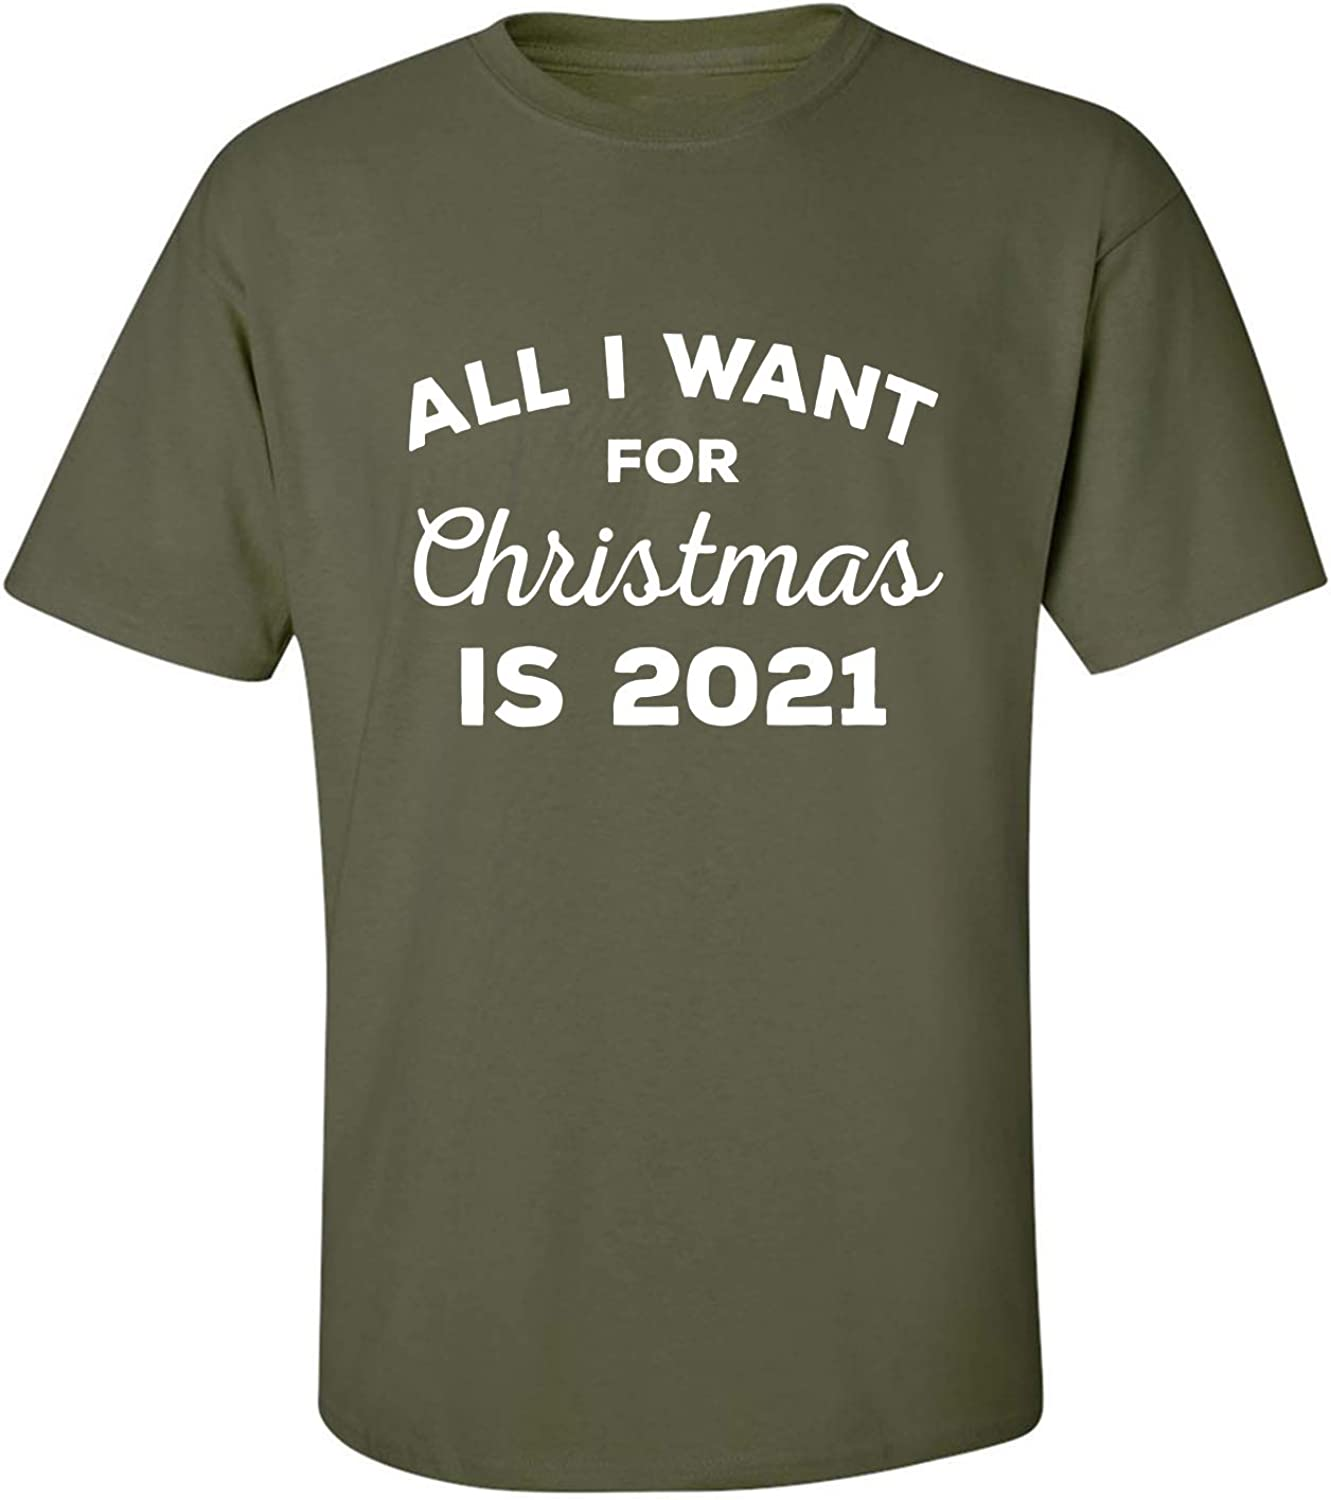 All I Want for Christmas is 2021 Adult T-Shirt in Military Green - XXXX-Large